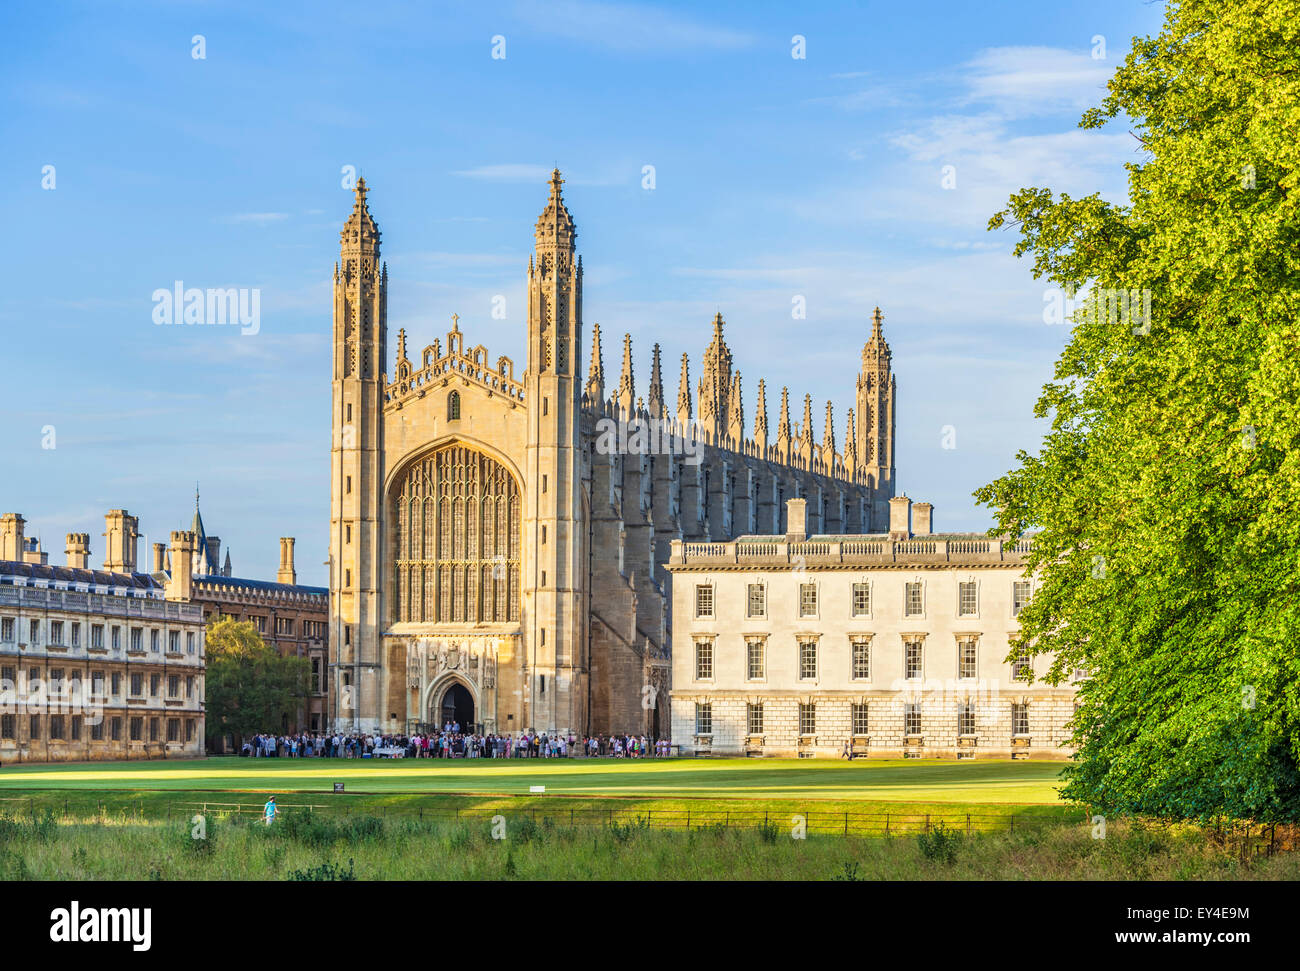 Kings College Chapel and Gibbs Building Cambridge University Cambridgeshire England UK GB EU Europe - Stock Image